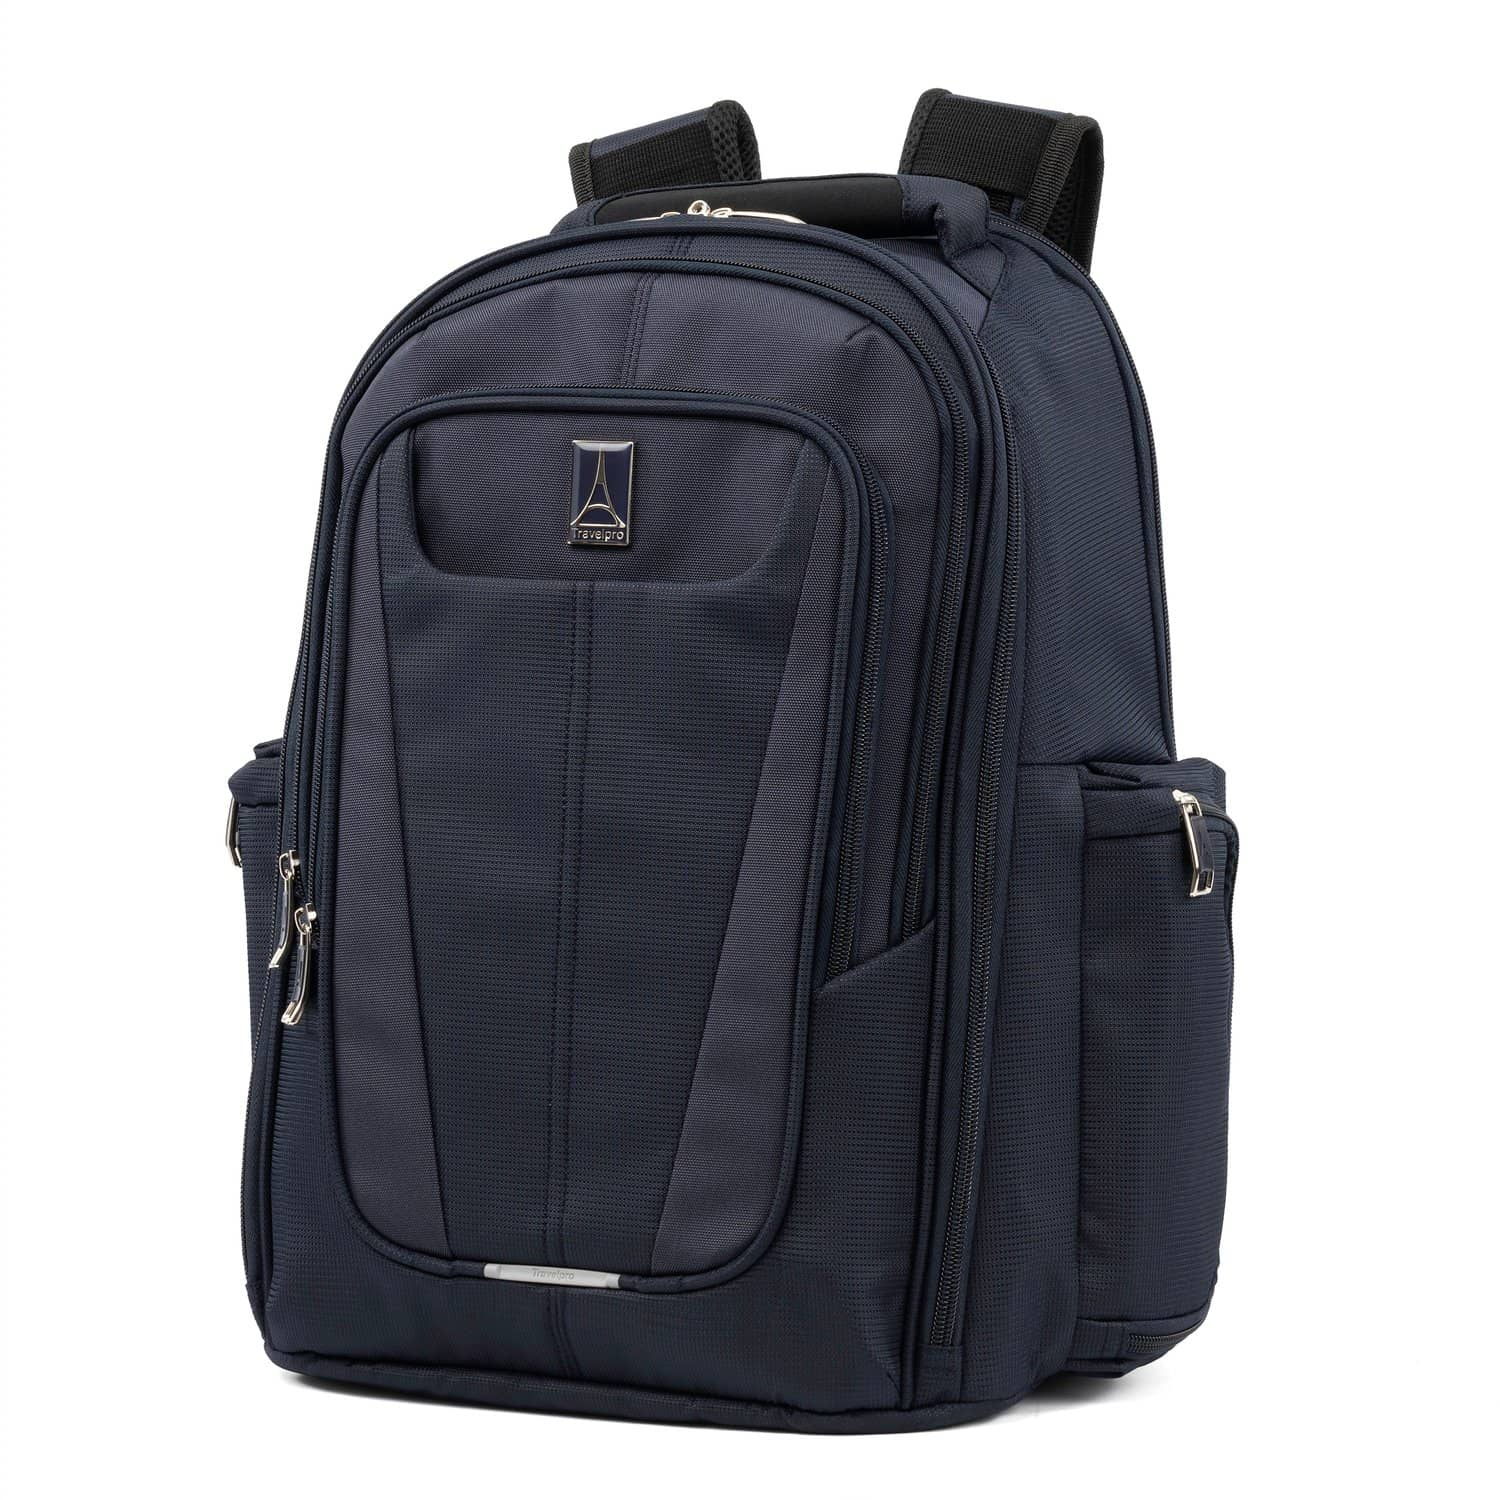 Travelpro Maxlite® 5 Laptop Backpack MIDNIGHT BLUE